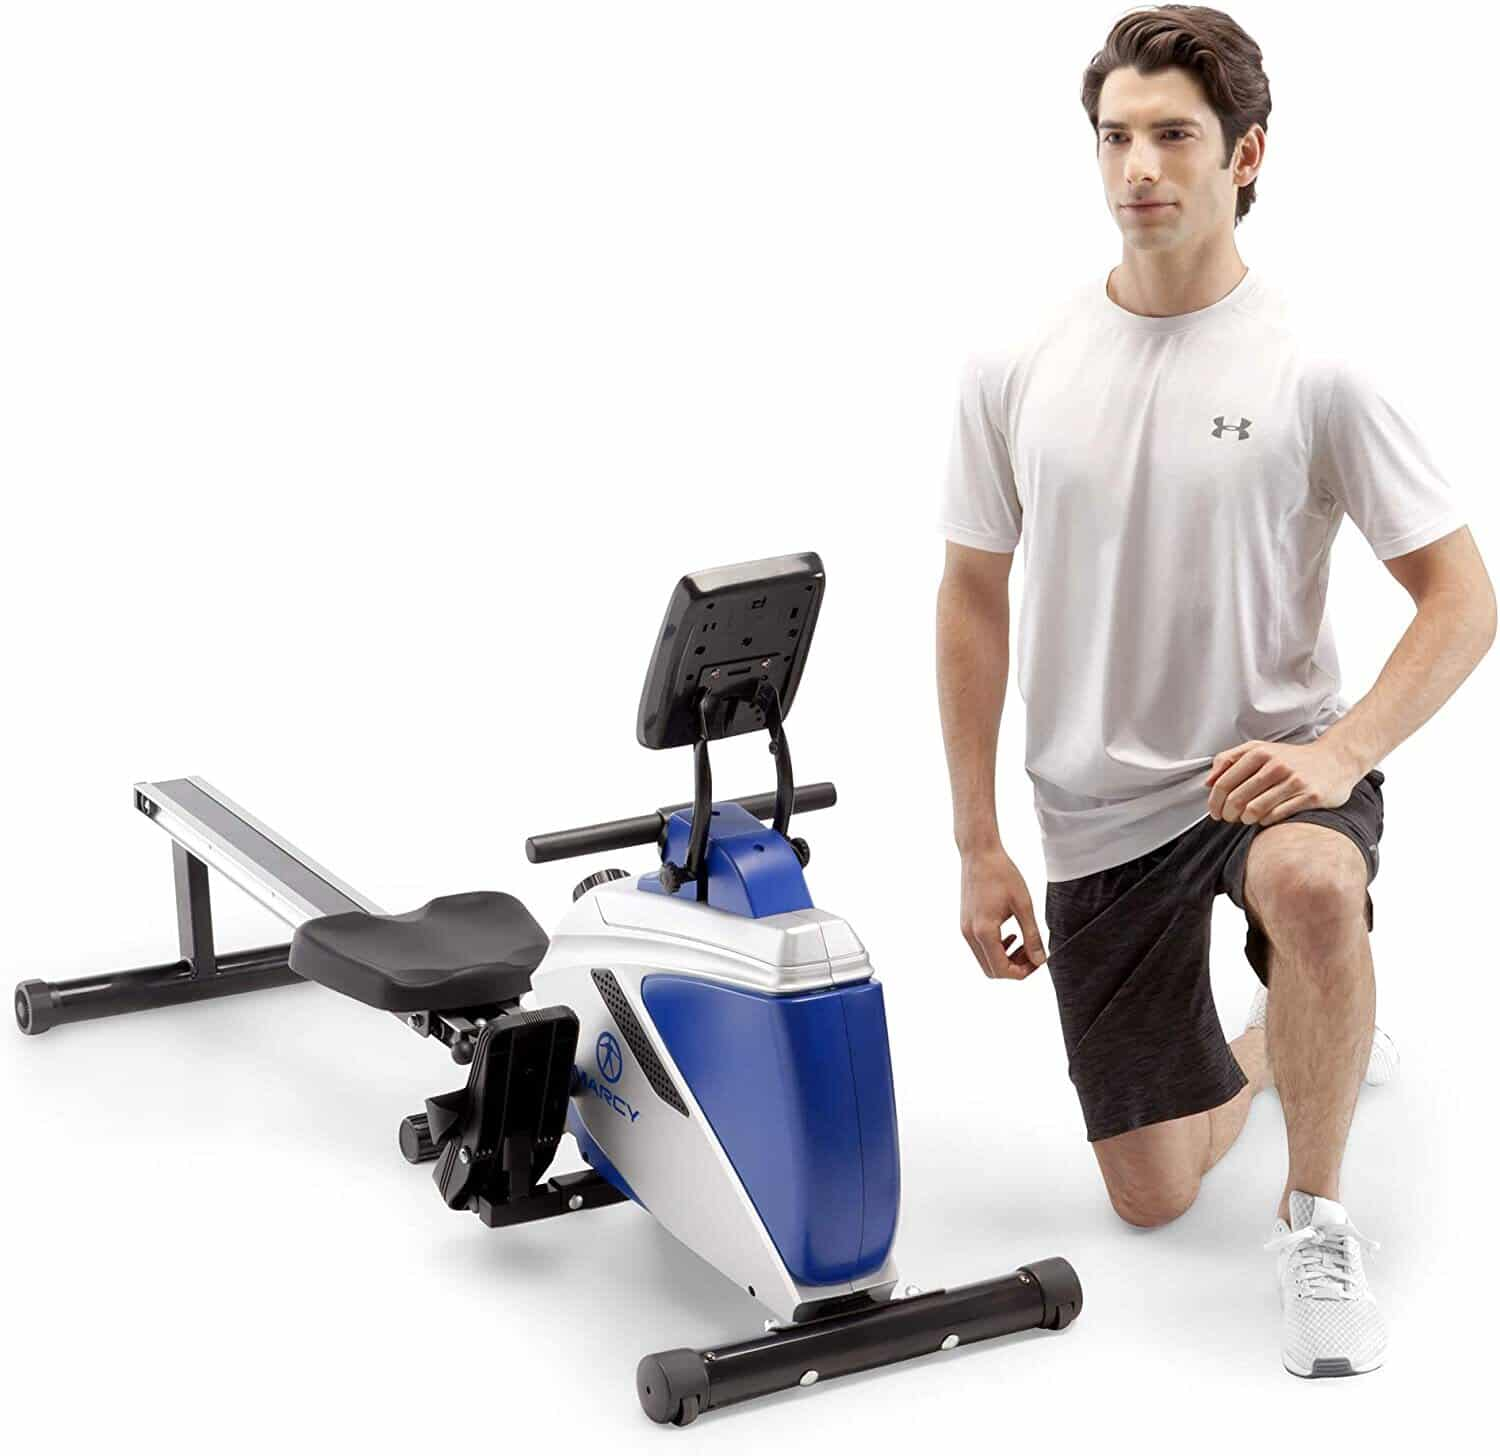 Marcy Foldable Magnetic Resistance Rowing Machine